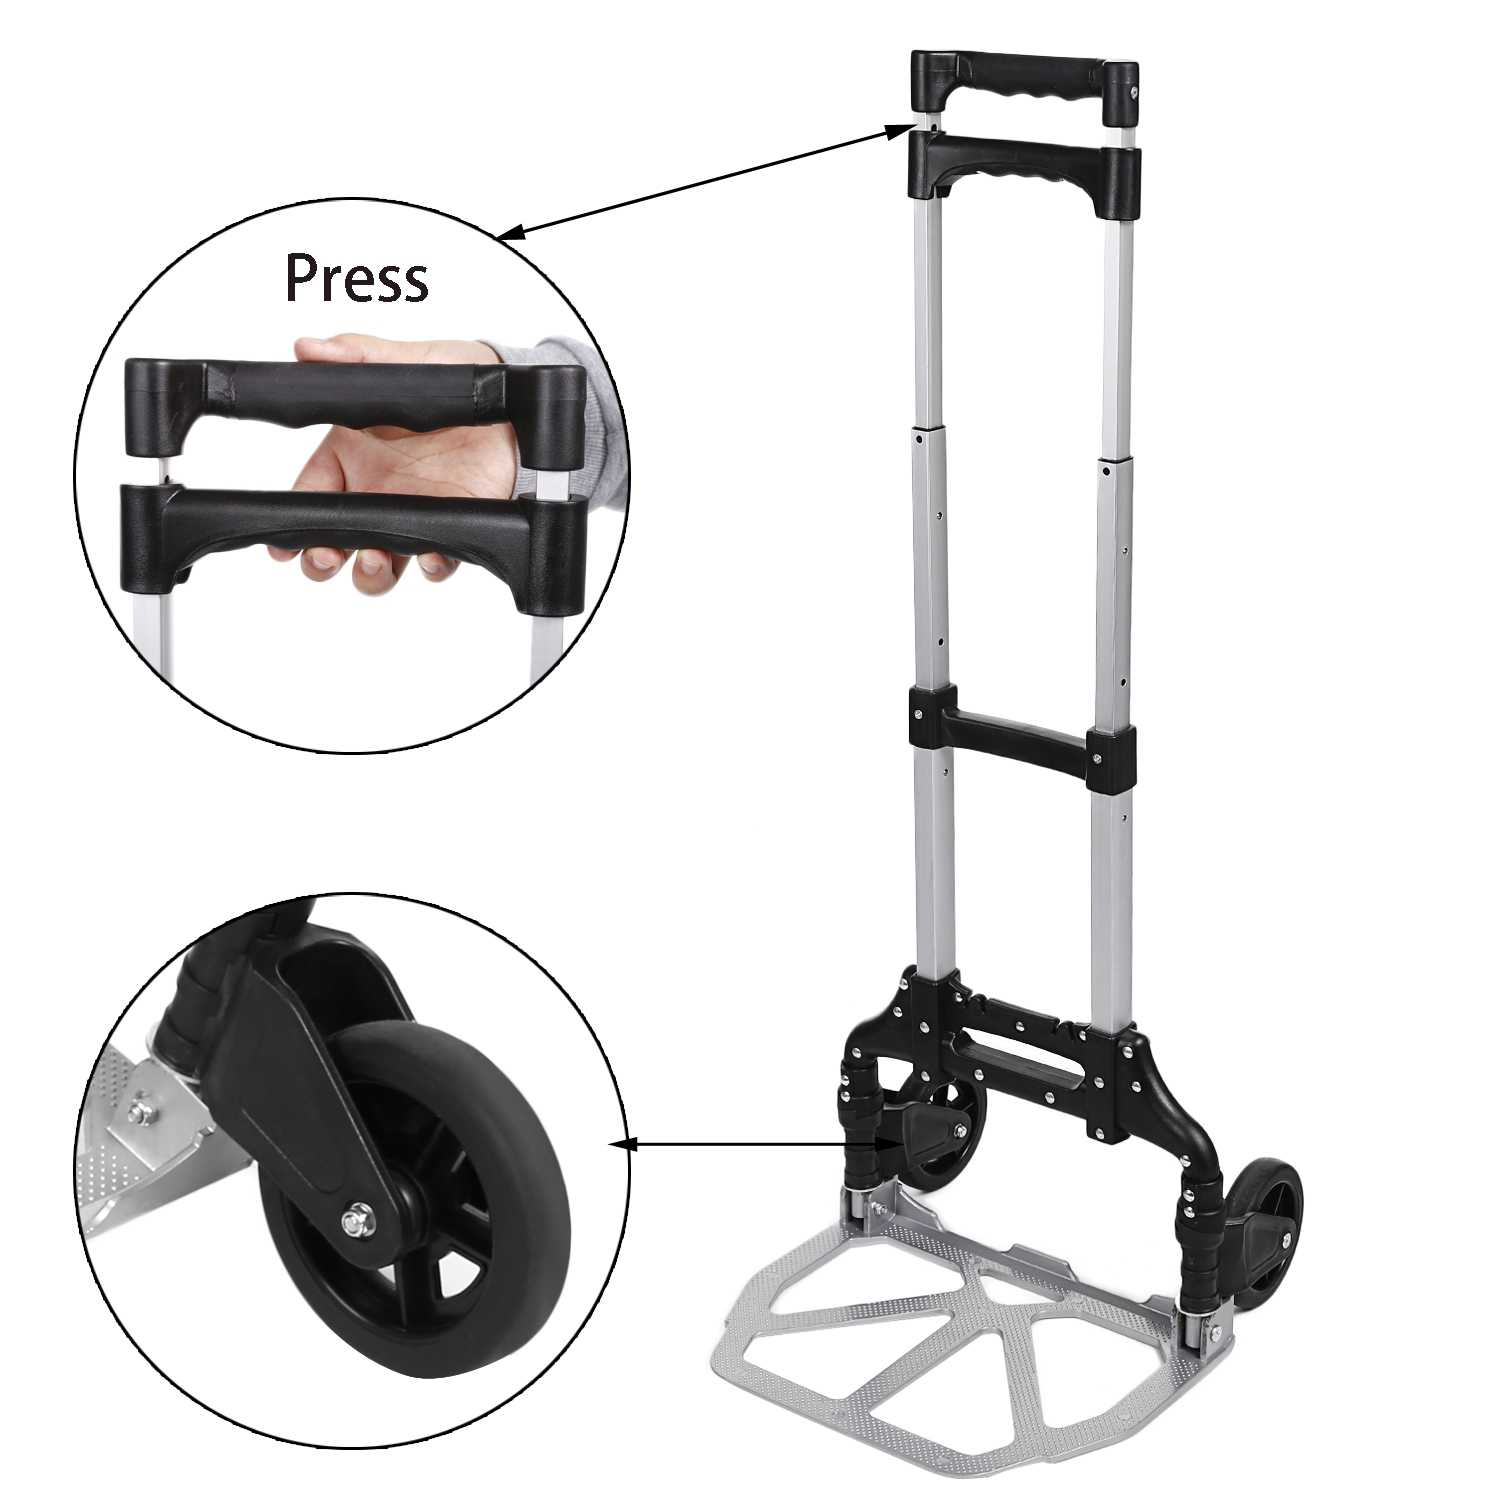 Folding 150 lbs Telescoping Hand Truck Hand Truck Aluminum Alloy Dolly Luggage Carts VAF